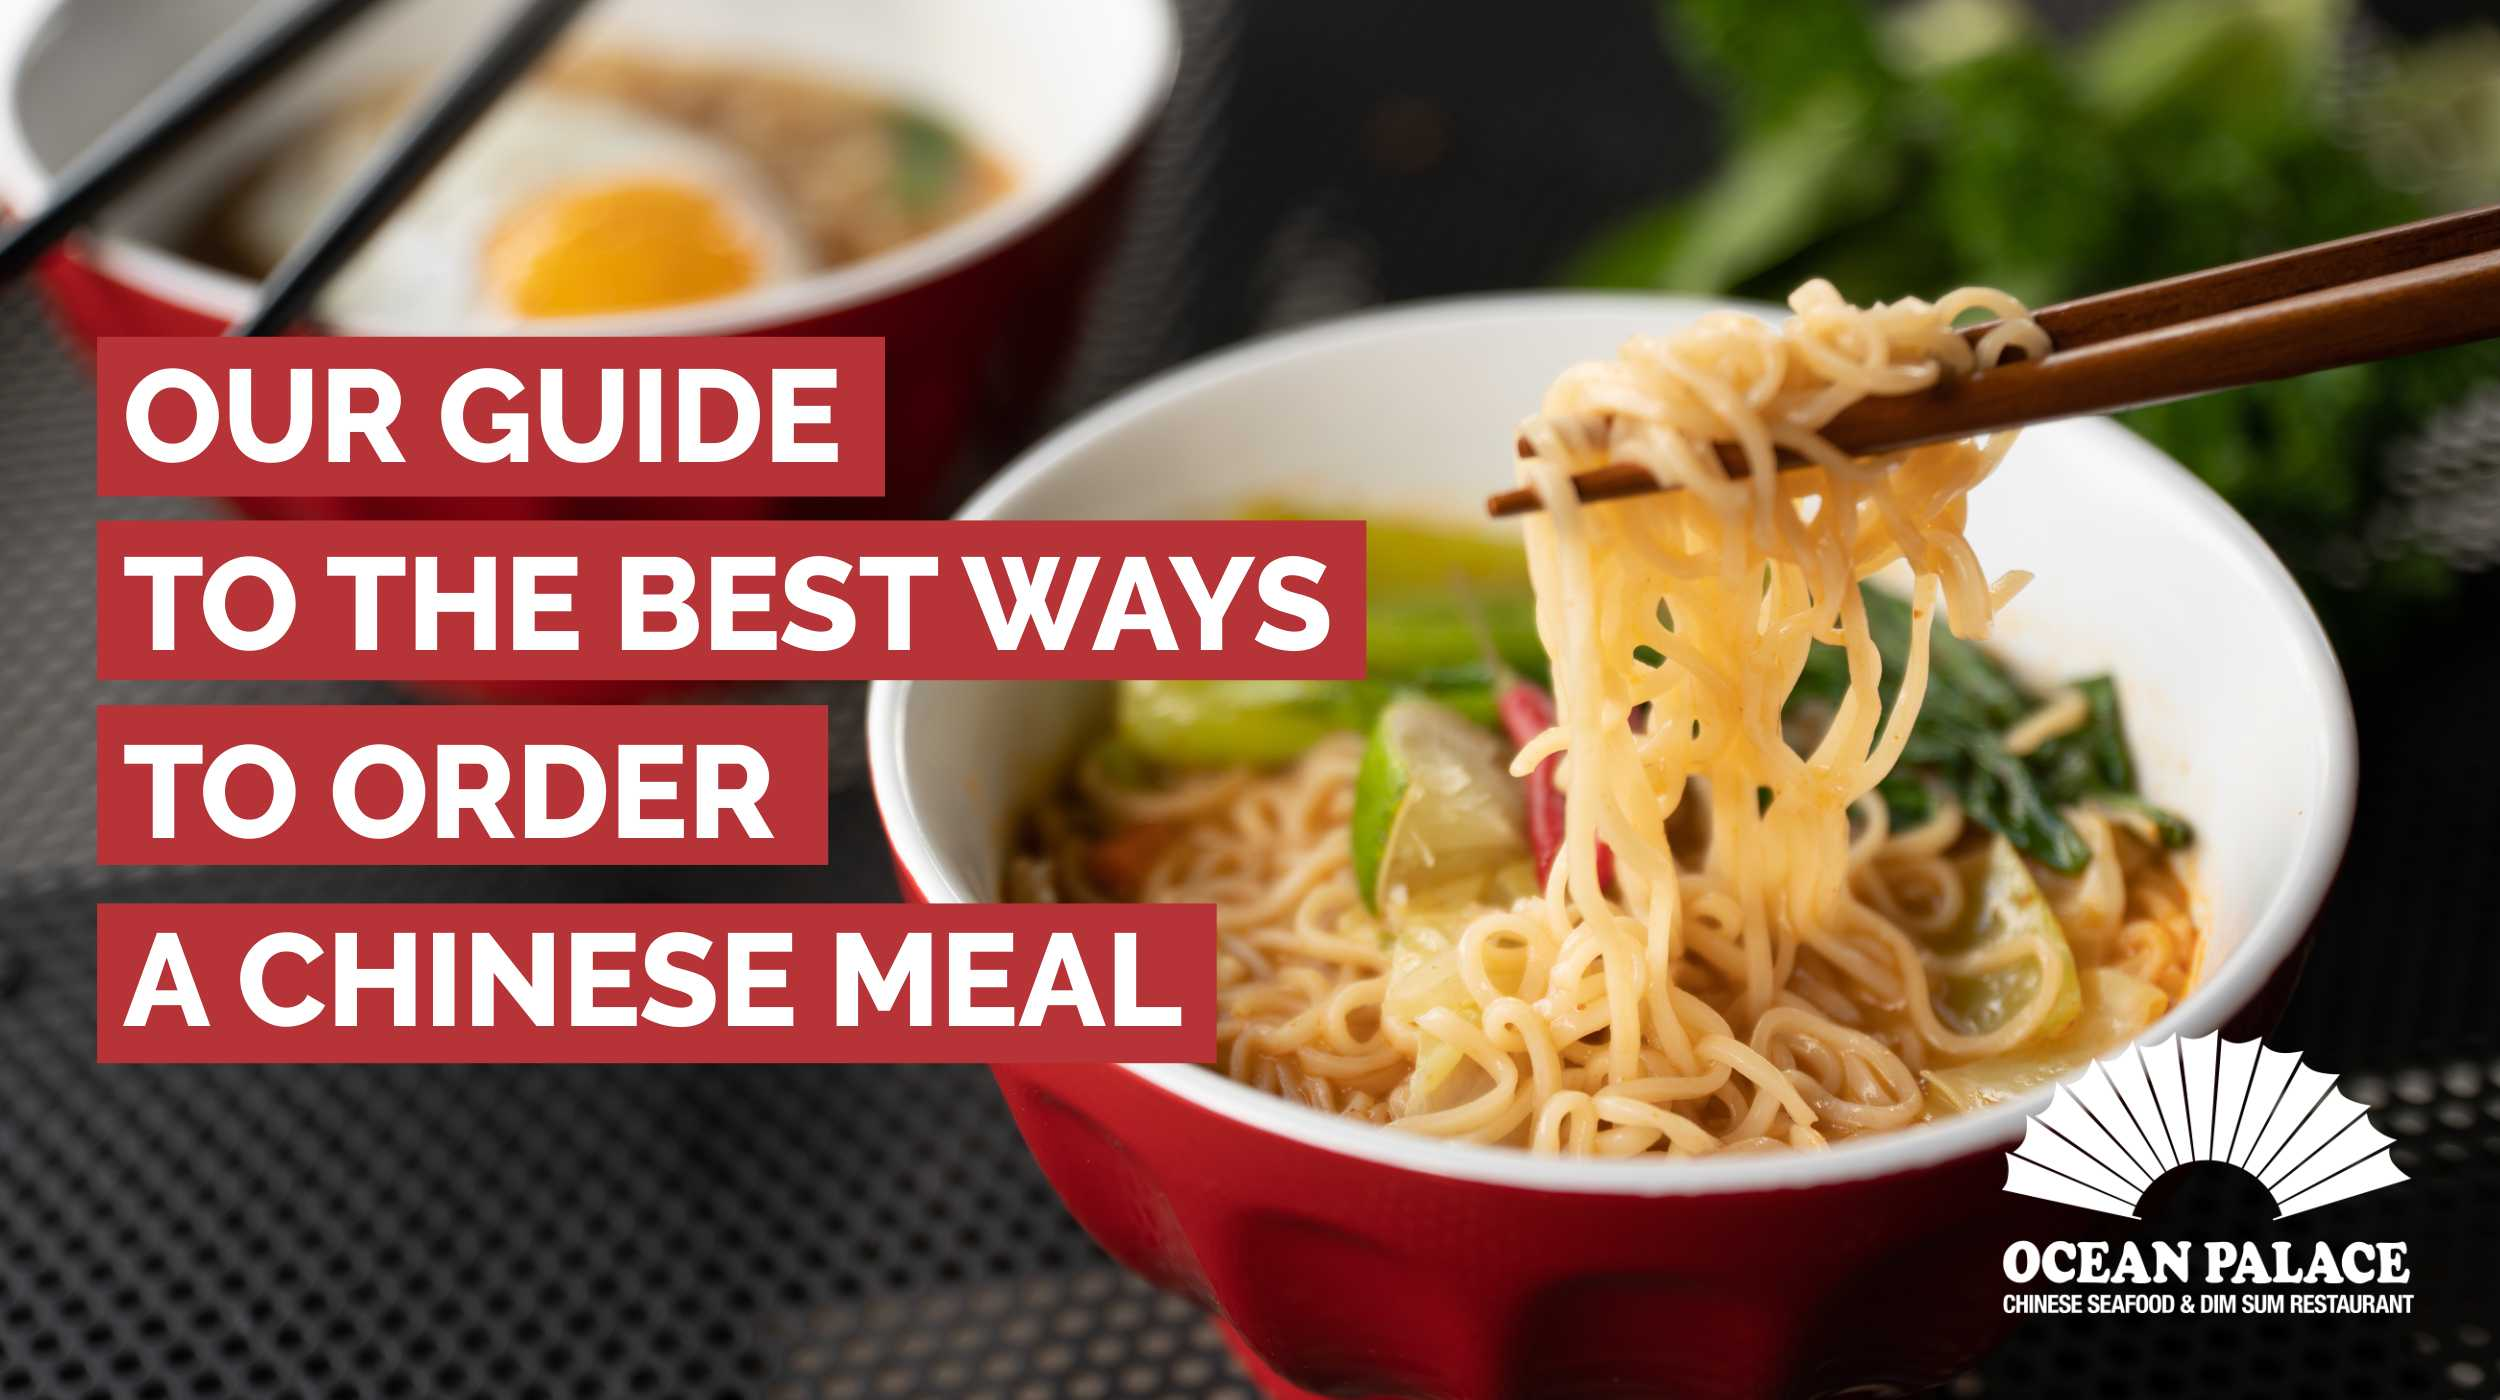 Our Guide to the Best Ways to Order a Chinese Meal